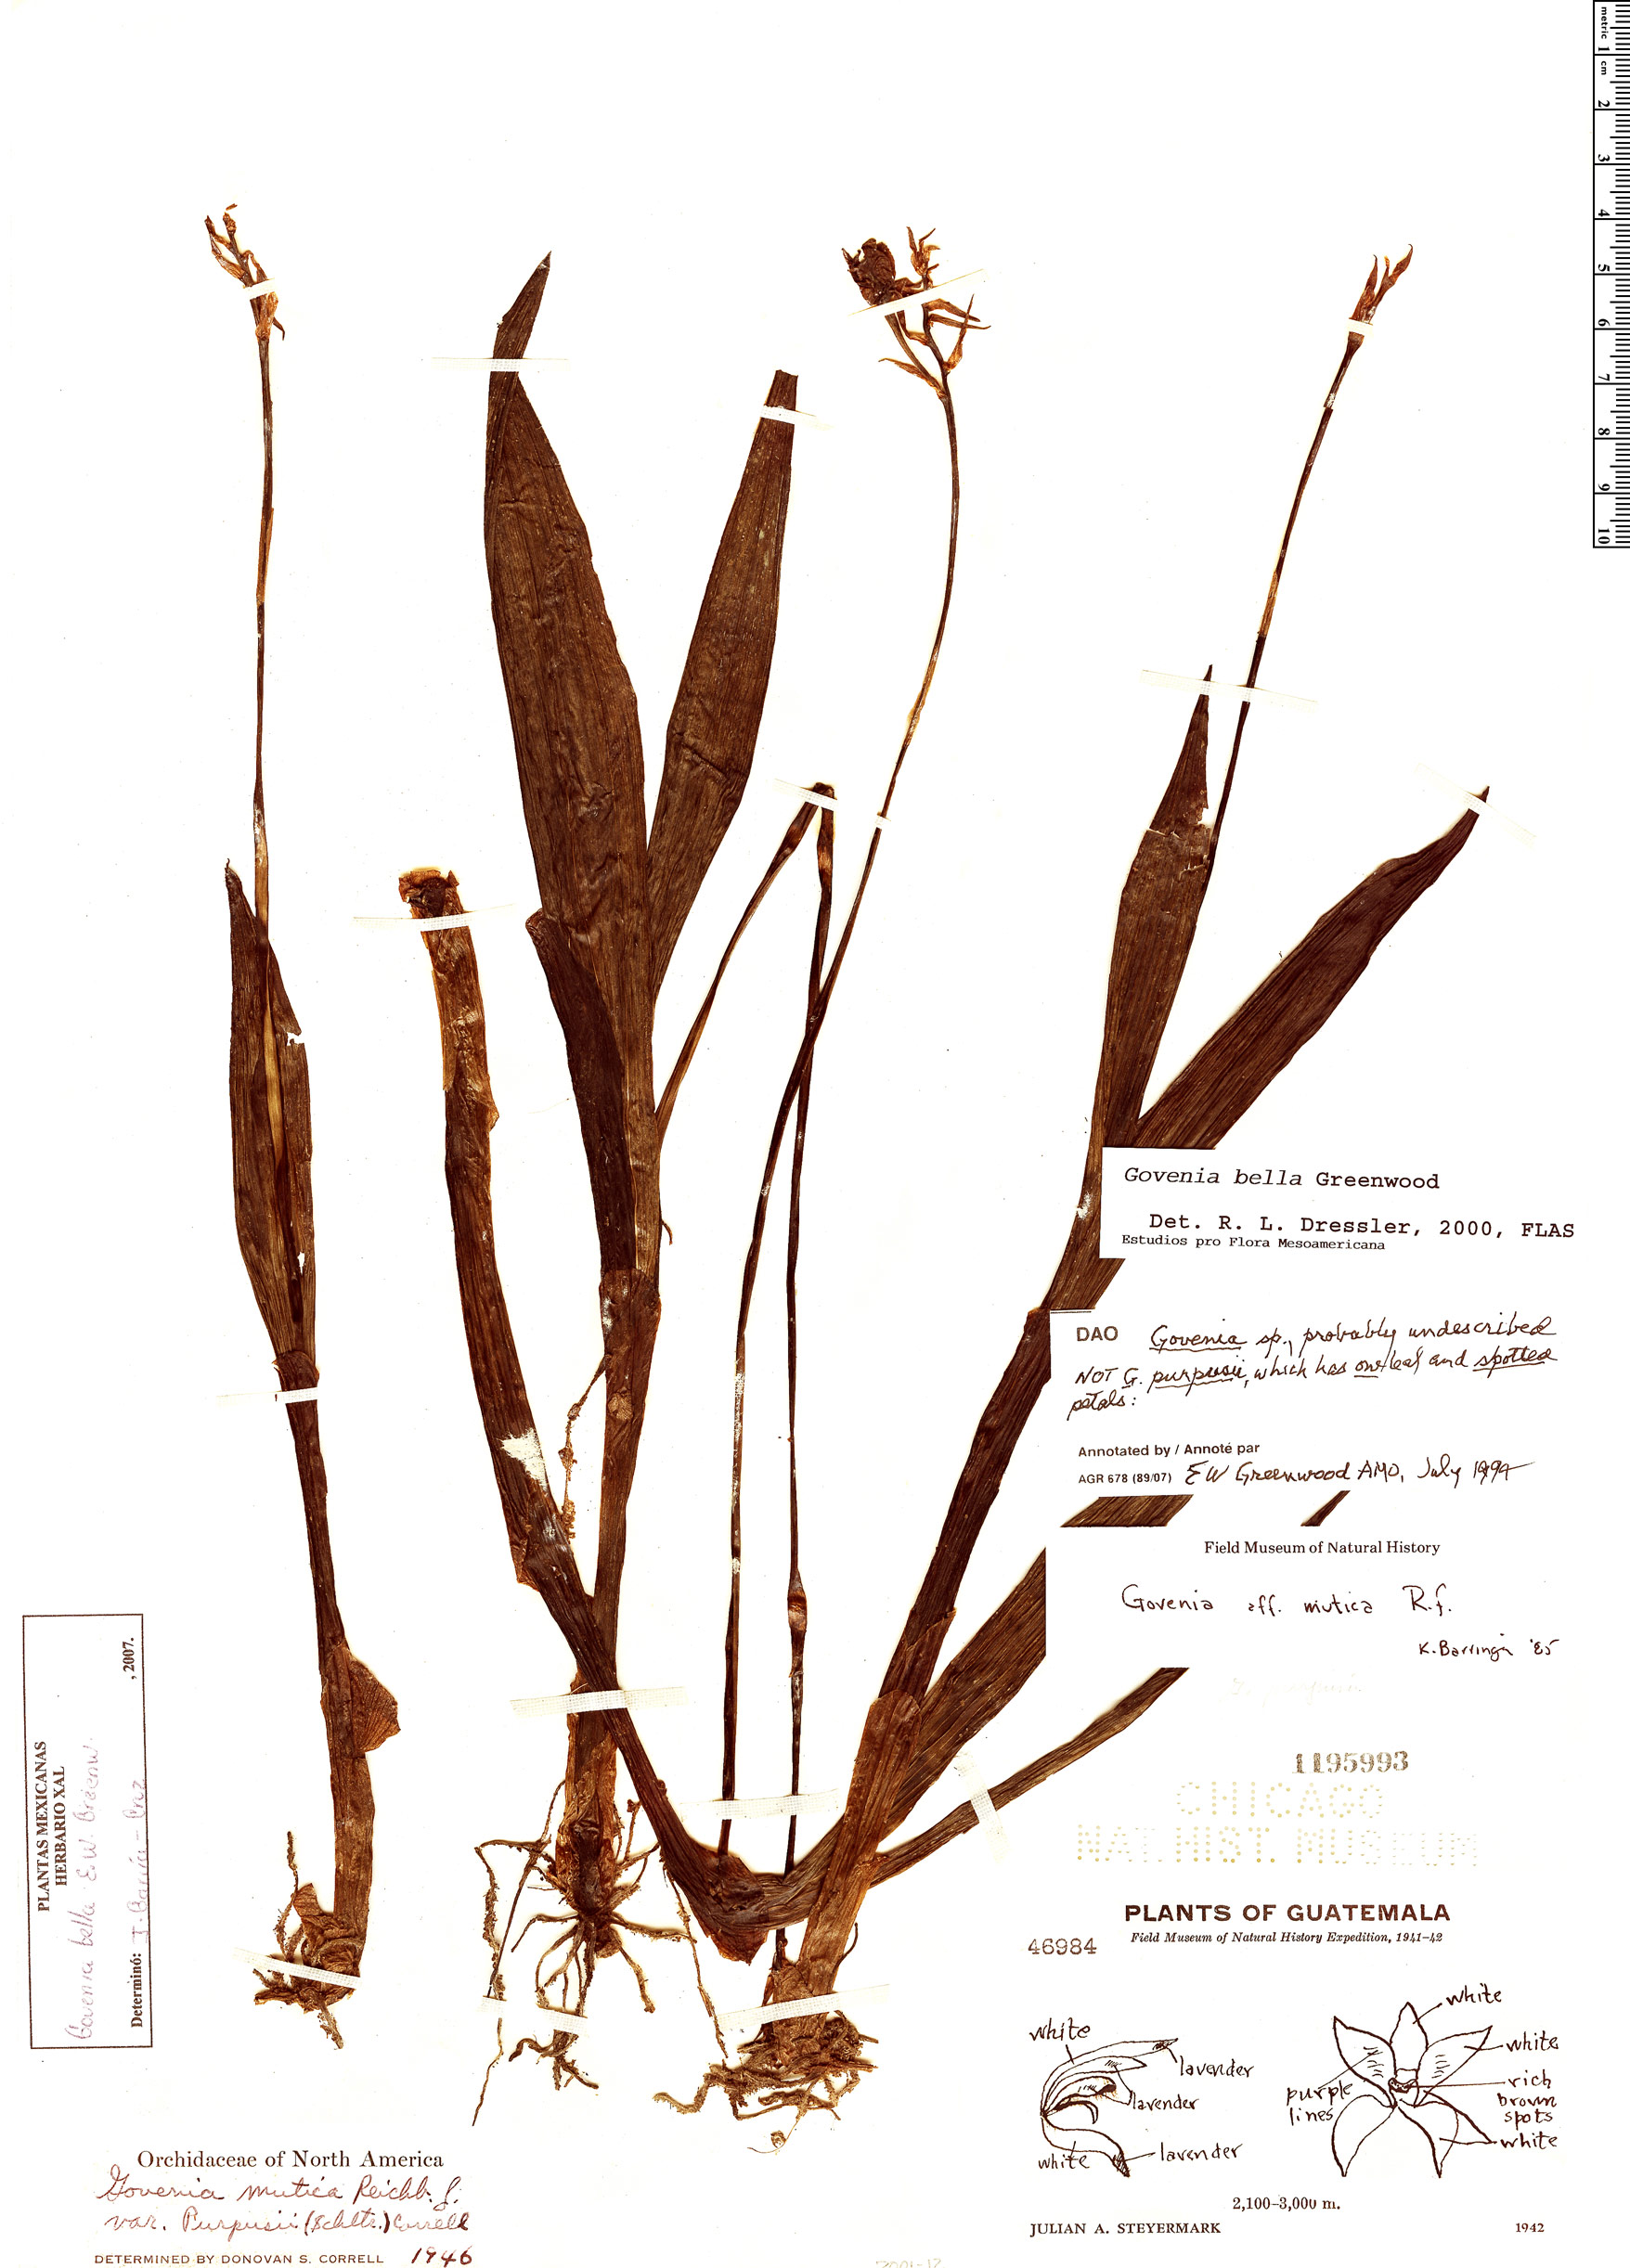 Specimen: Govenia bella